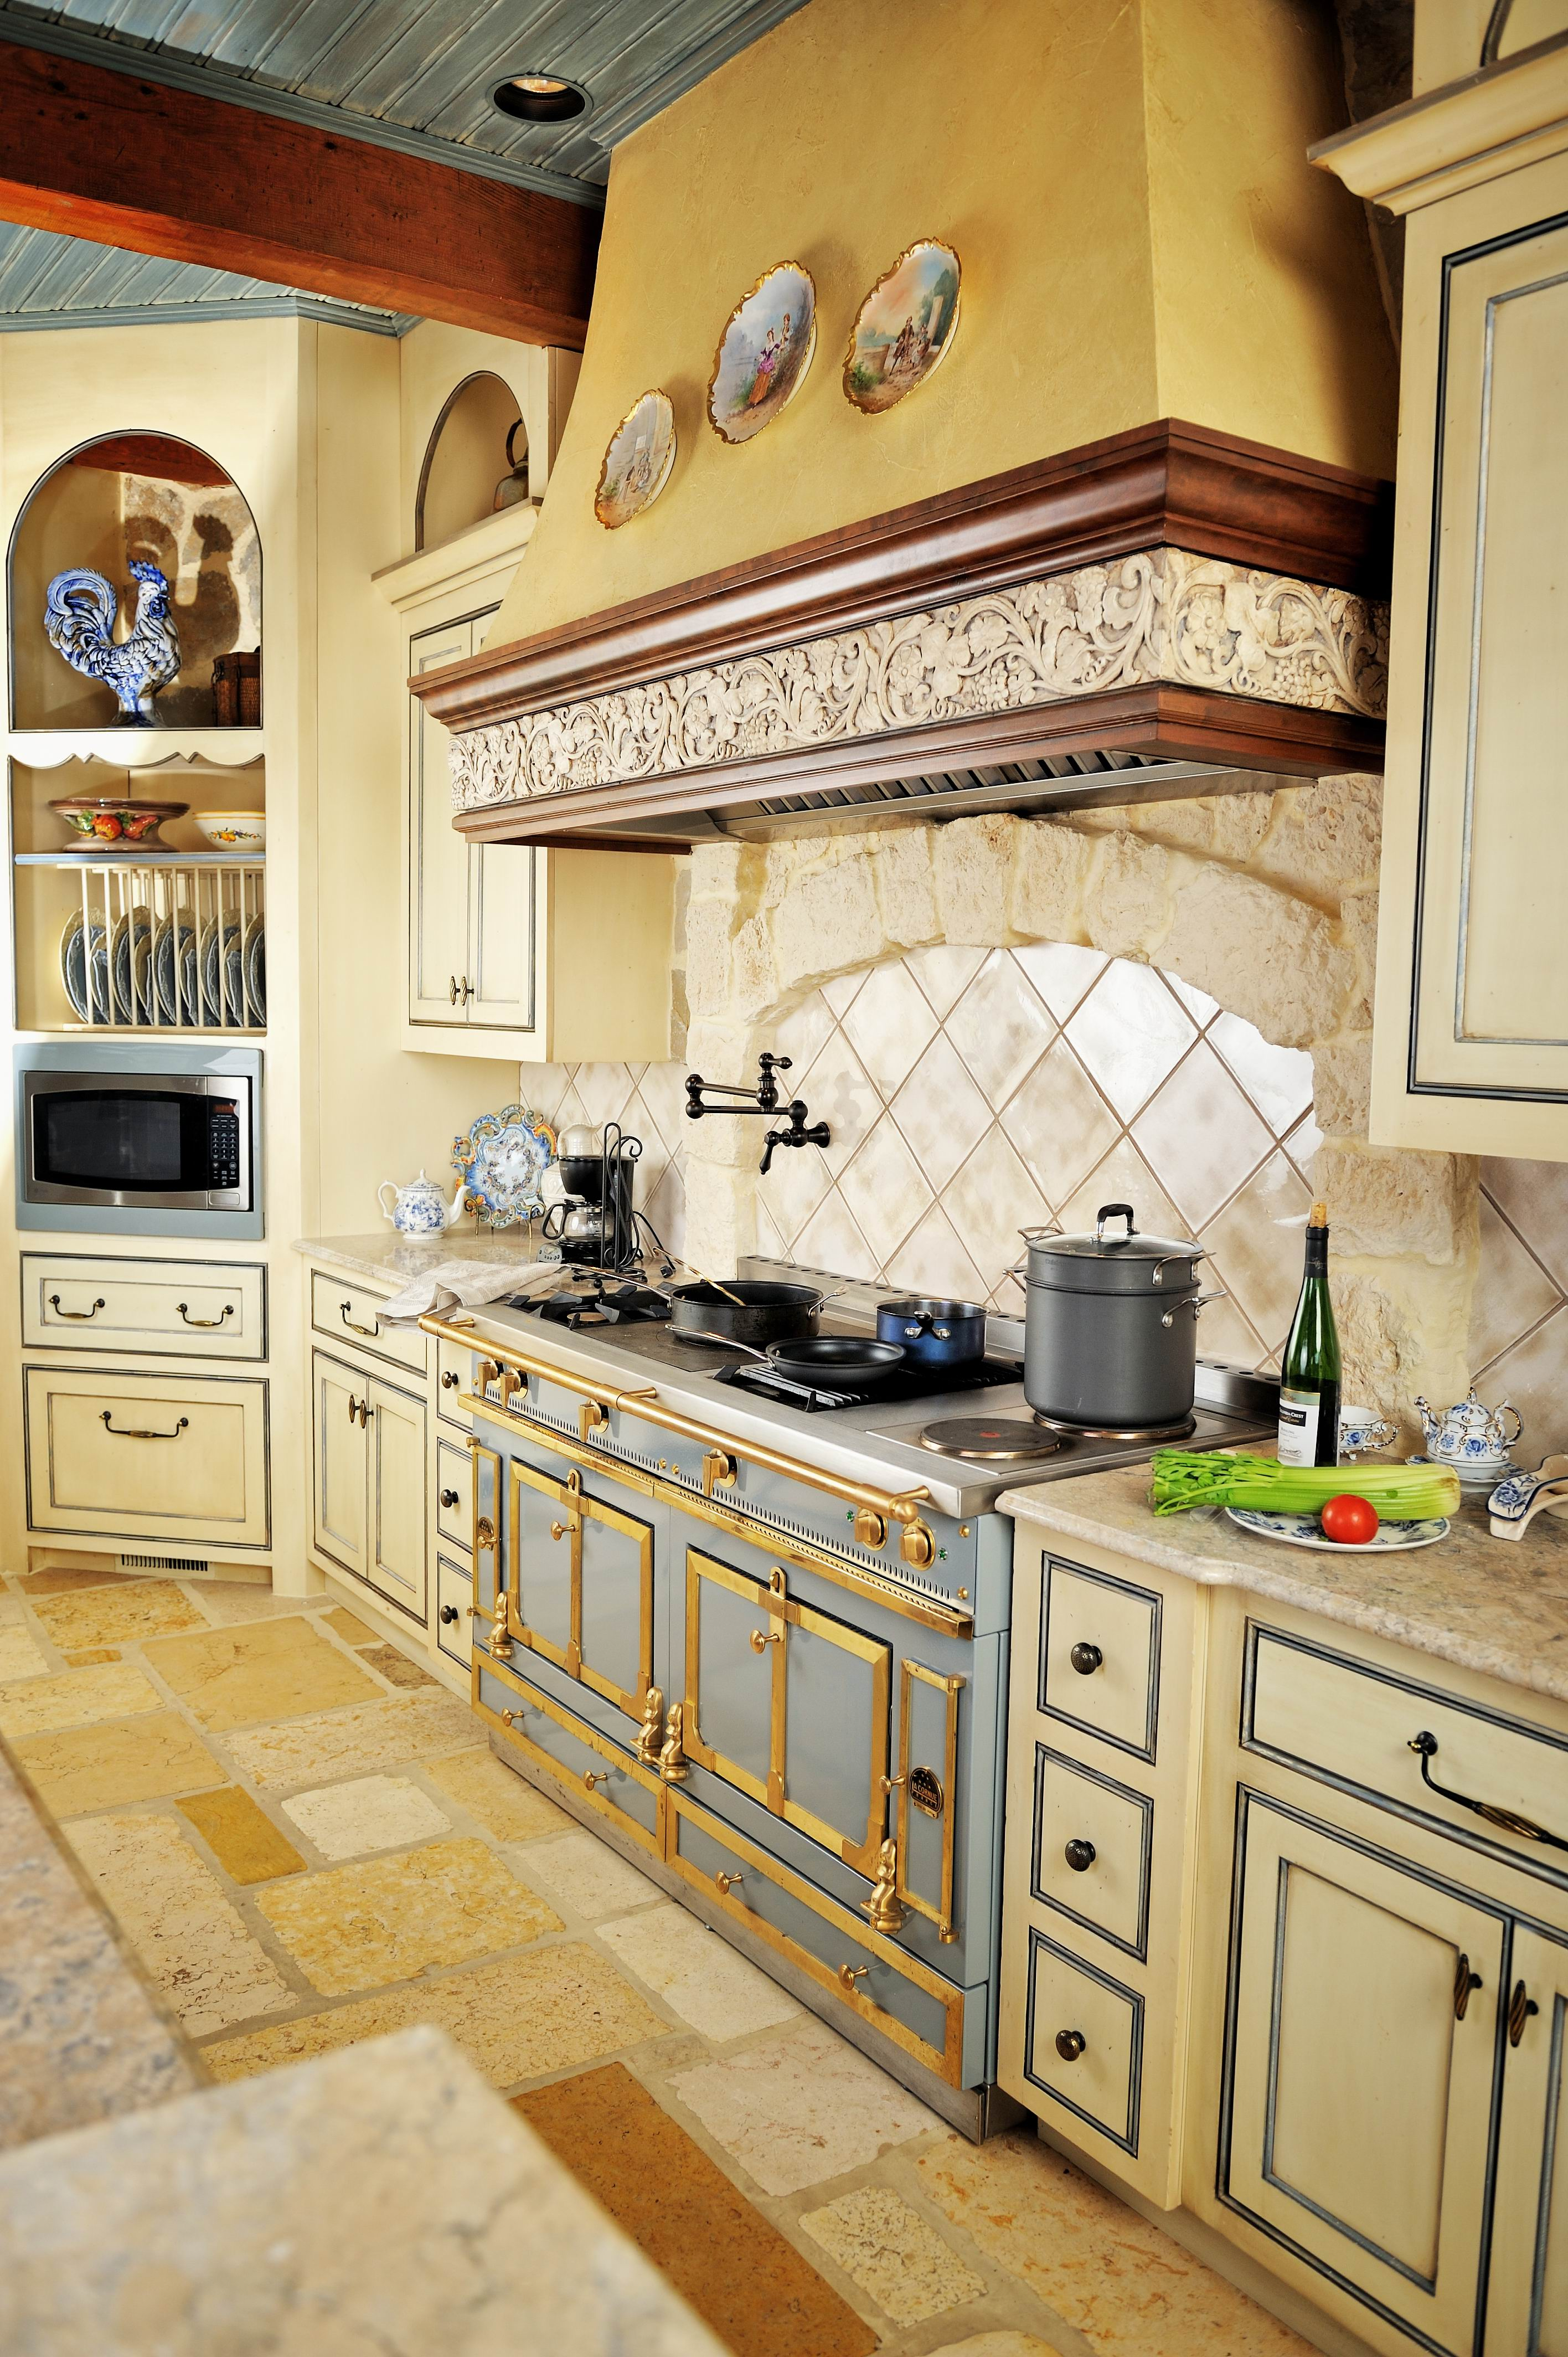 french country kitchen designs cabinets albuquerque leading interior designer proves point with 15 000 sq ft